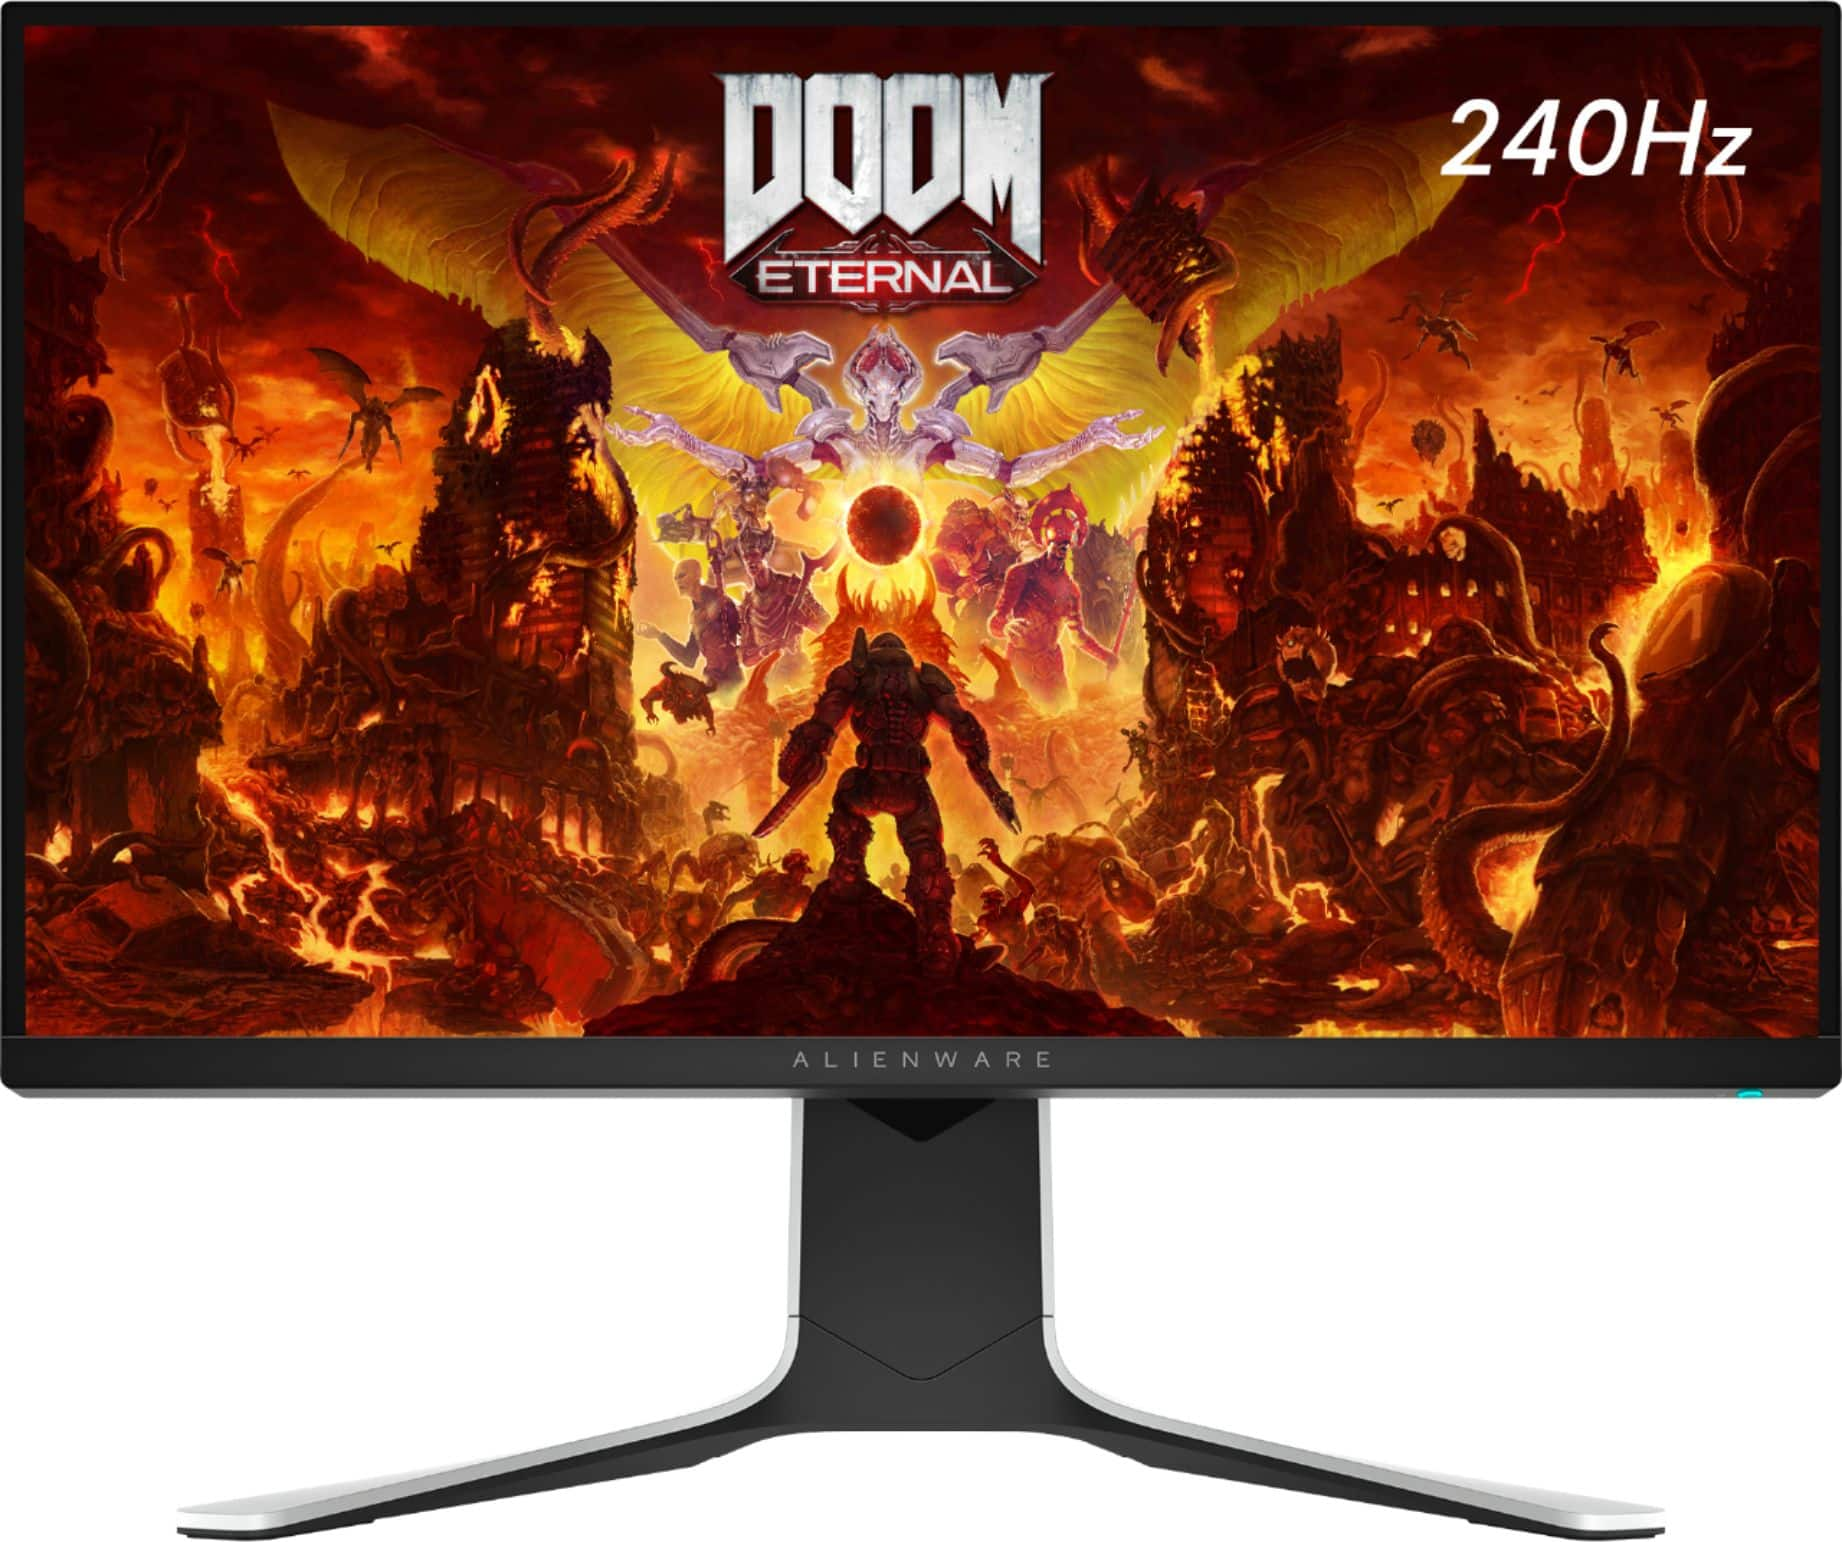 """Alienware AW2720HF 27"""" IPS LED FHD FreeSync and G-SYNC Compatible Monitor (DisplayPort, HDMI, USB) Black GY2XK - Best Buy $319.99"""